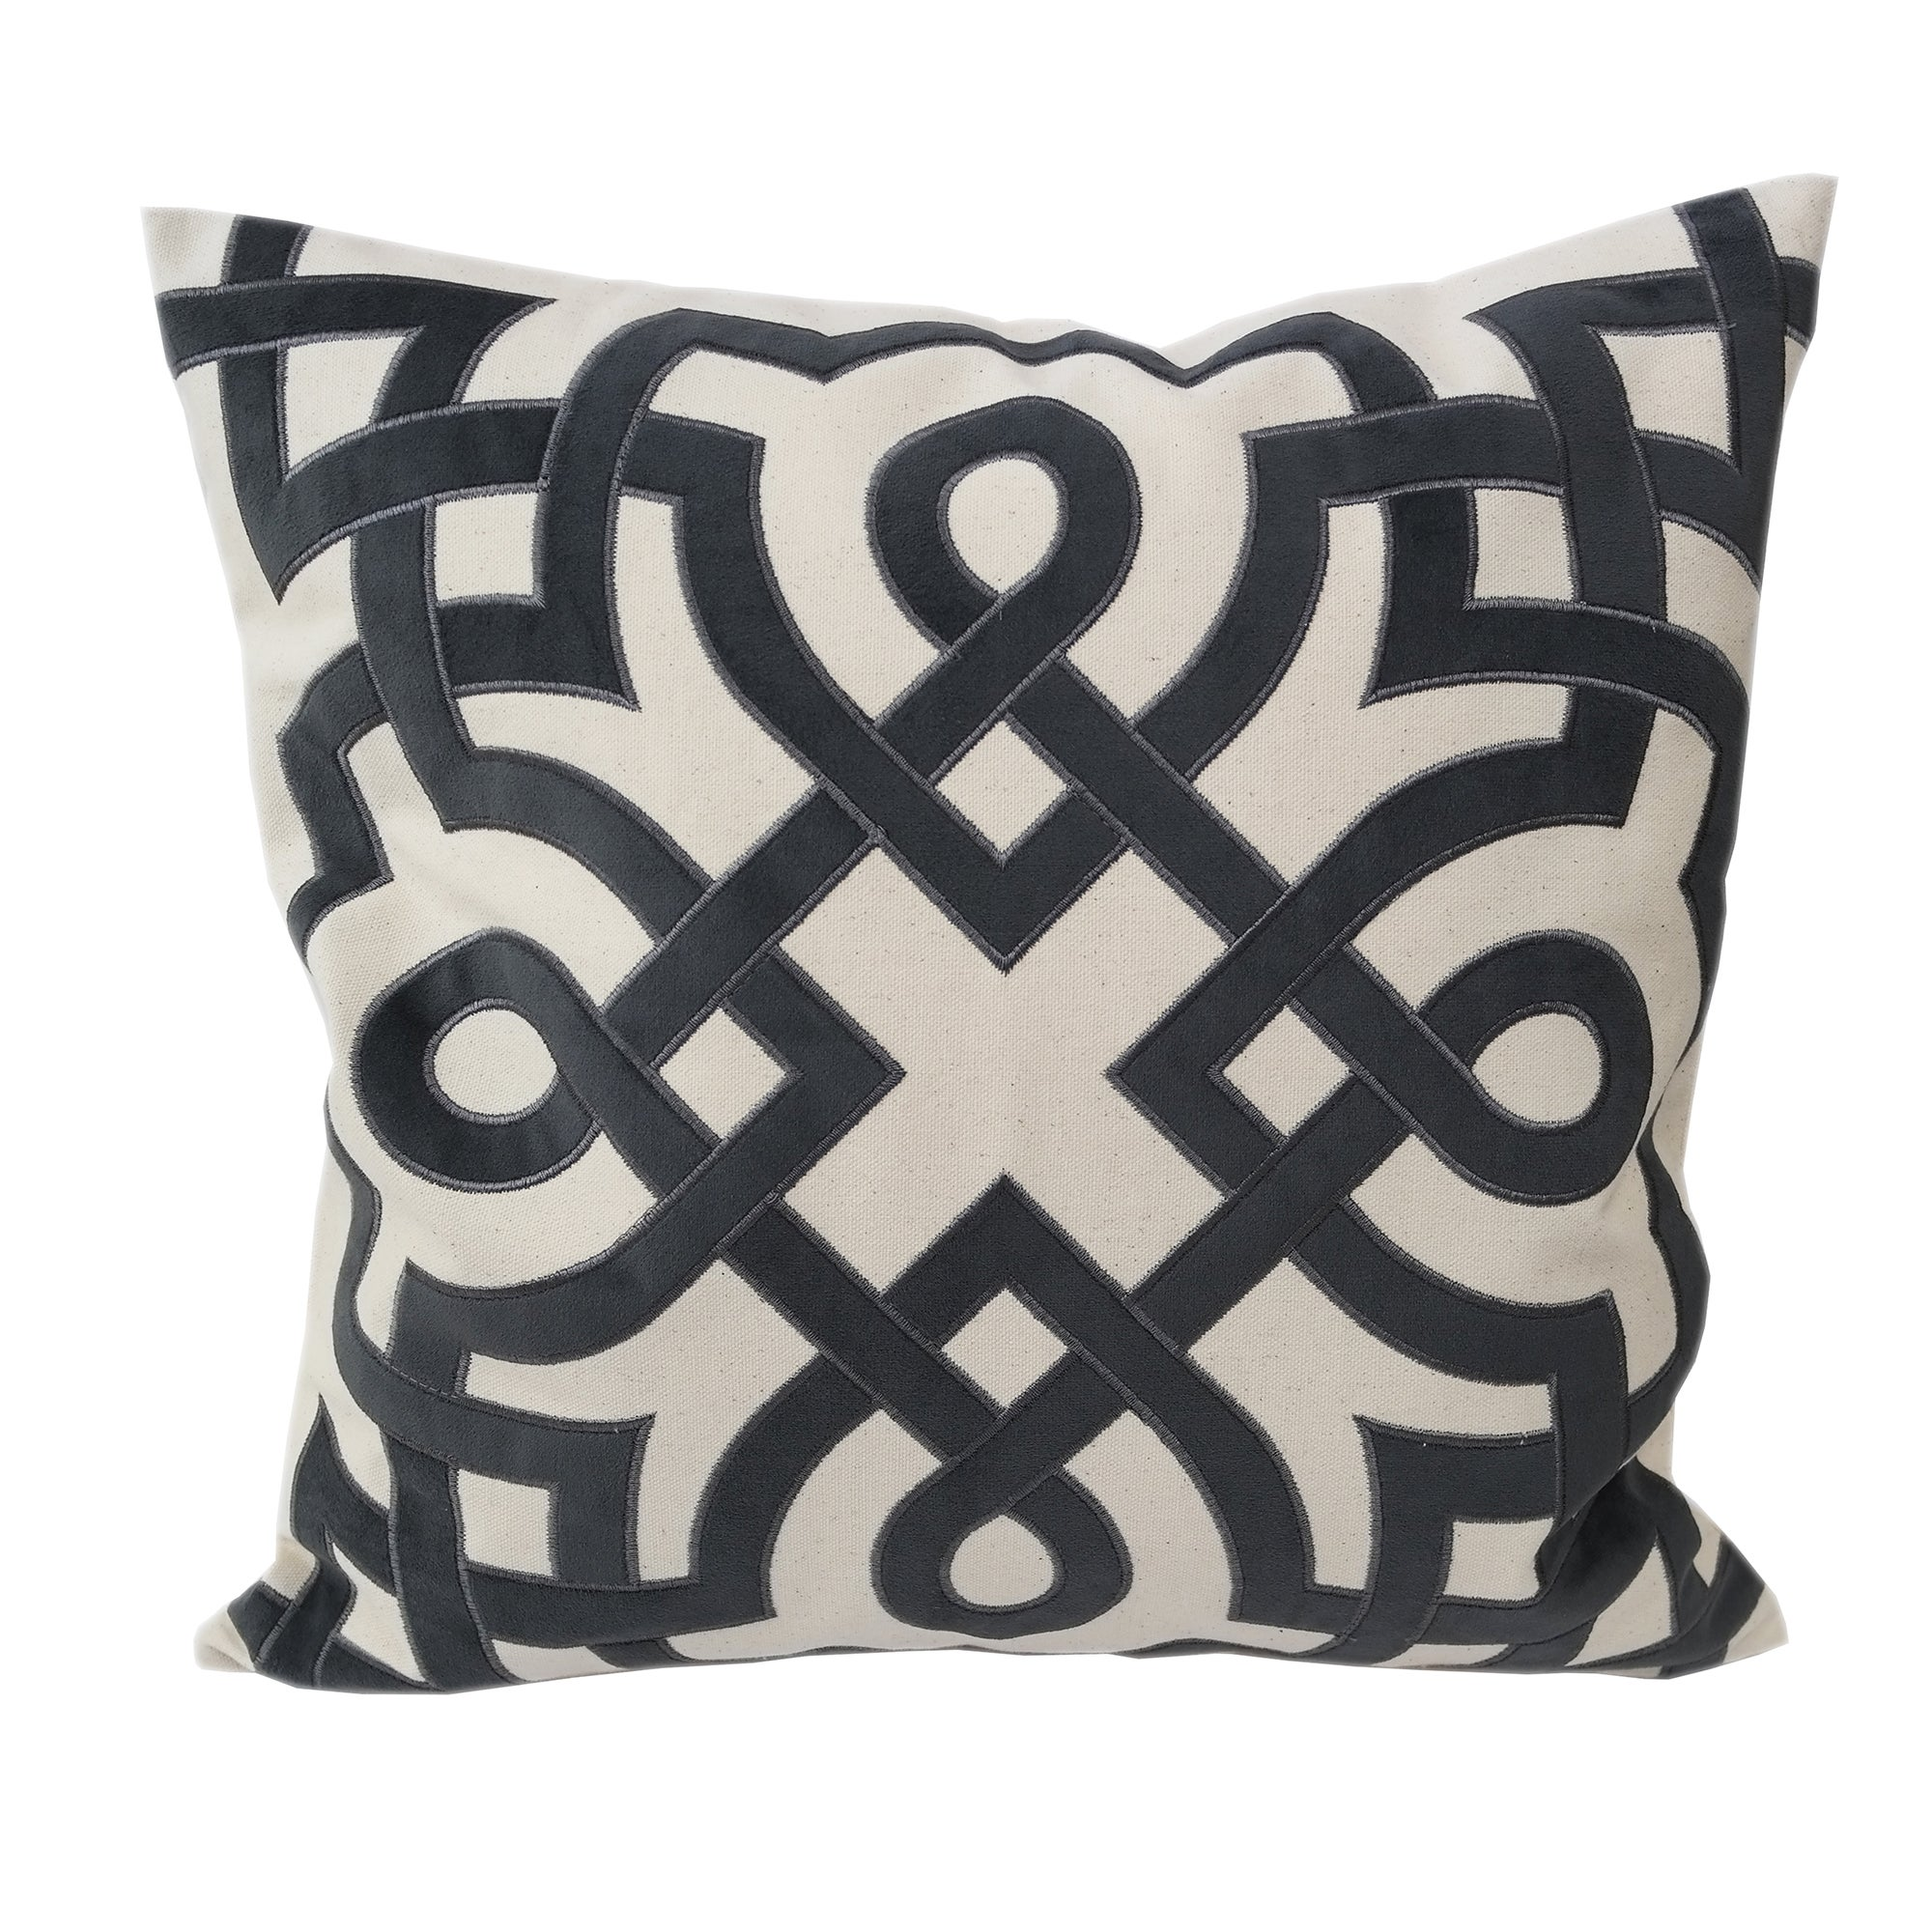 Home Accent Pillows Natural And Grey Geometric Applique Embroidered Poly Linen 20 Inch Throw Pillow On Sale Overstock 14662135